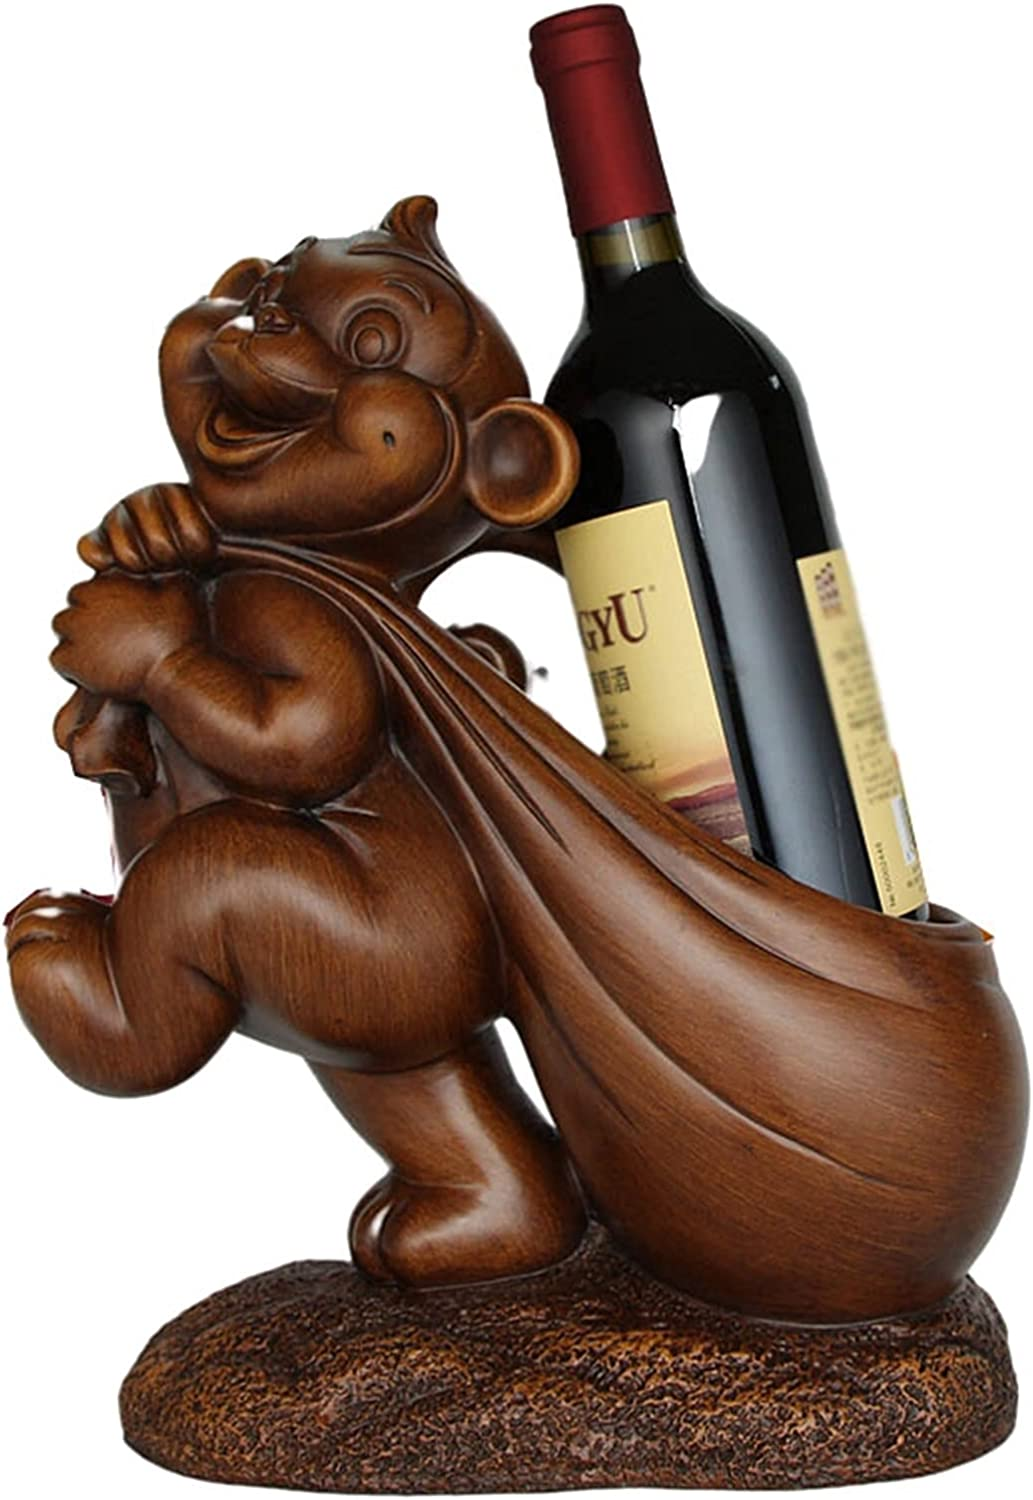 Wine Rack Casual Monkey-Shape Cheap Oakland Mall mail order specialty store Resin Office Living Ornament Room